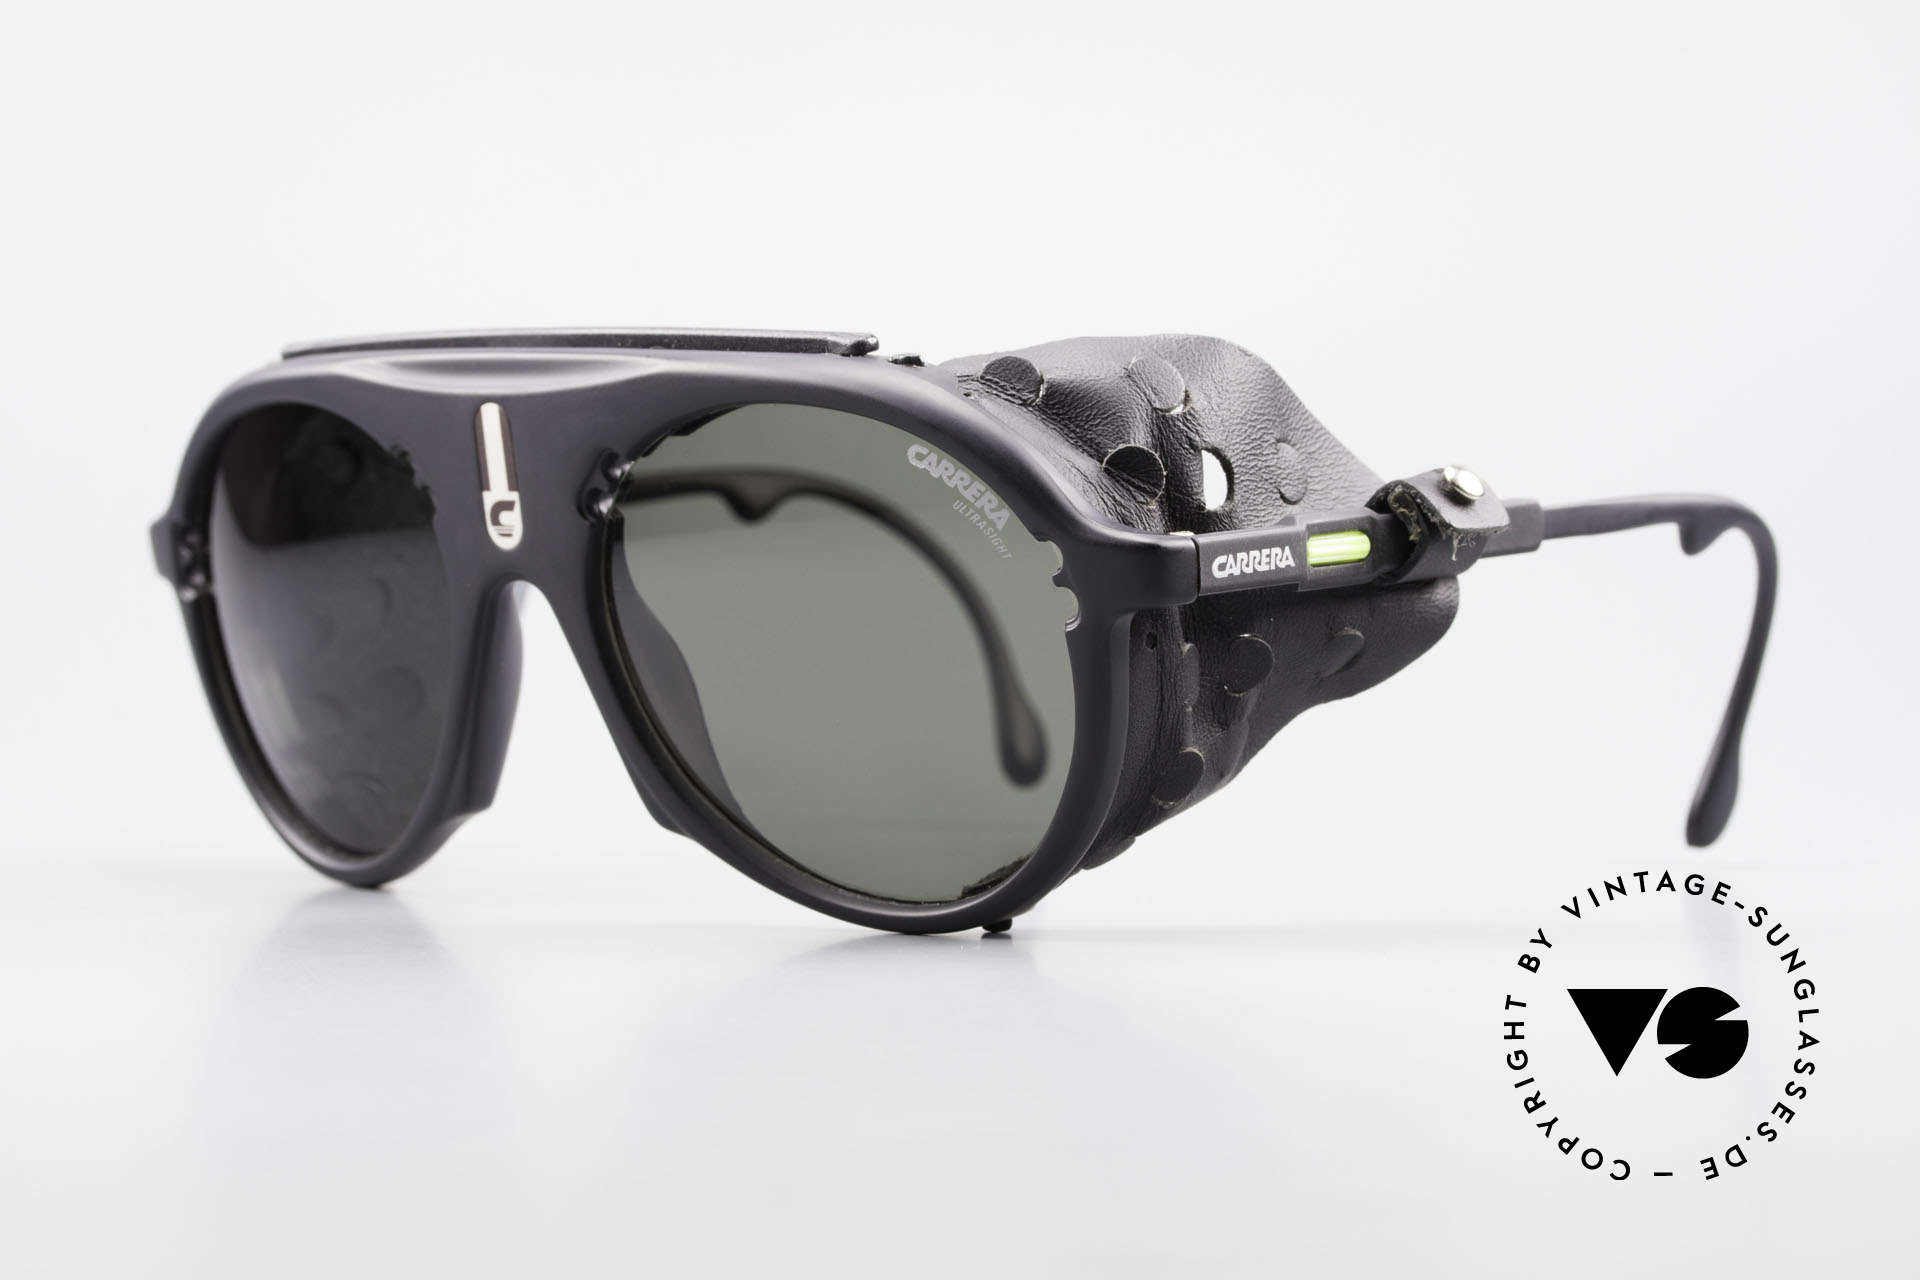 Carrera 5436 Glacier Shades Water & Ice, removable nose protection & removable side blinds, Made for Men